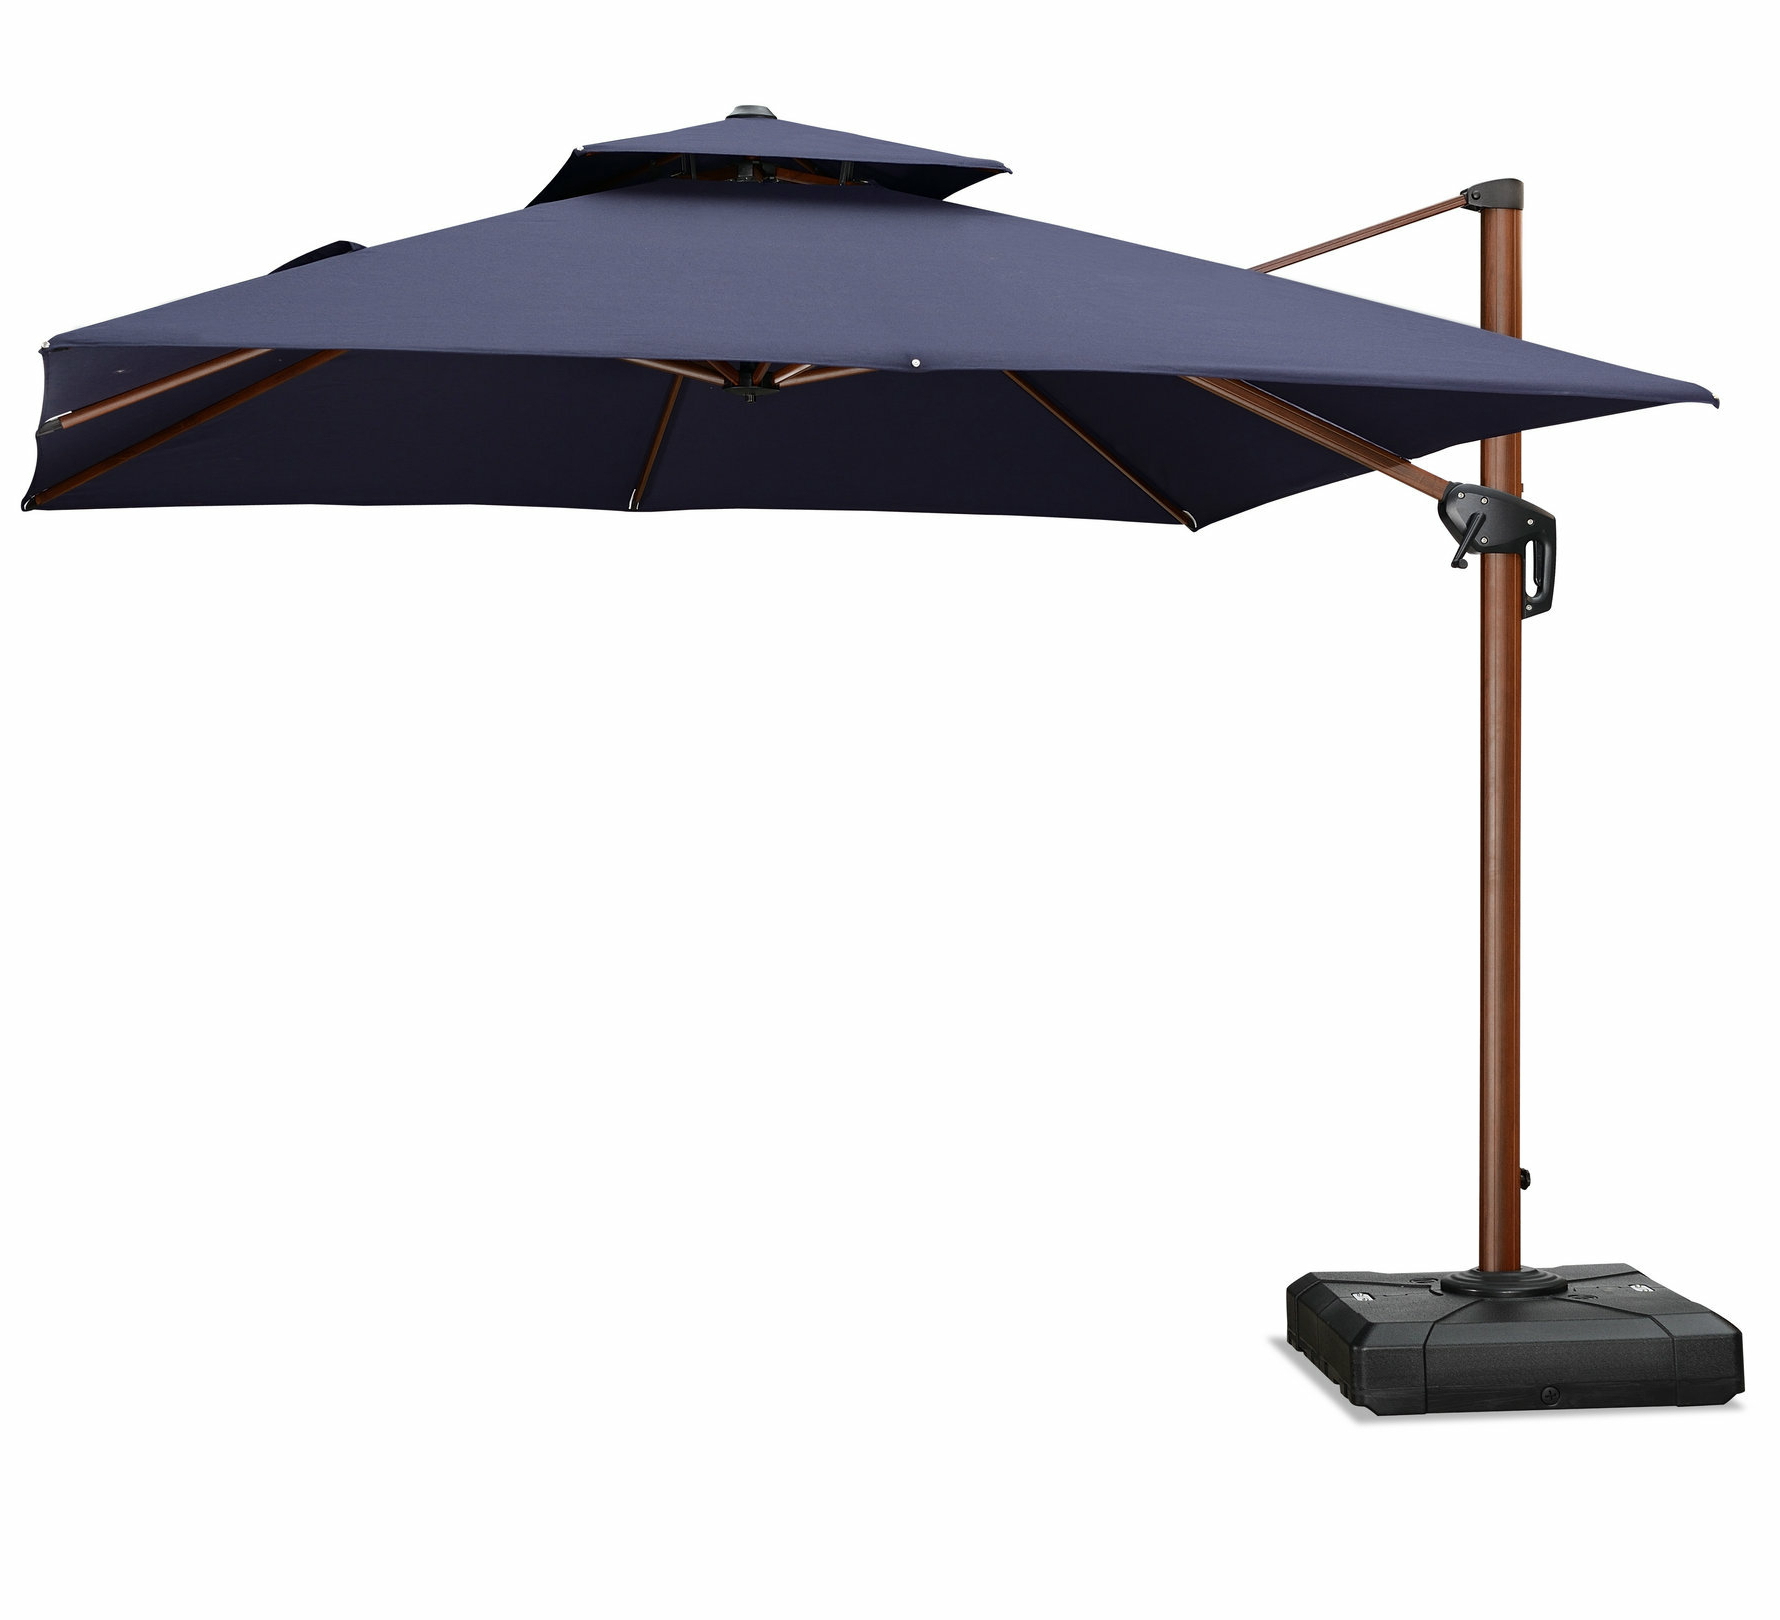 Spitler Square Cantilever Umbrellas With Regard To 2020 Waddell 10' Square Cantilever Umbrella (View 16 of 20)